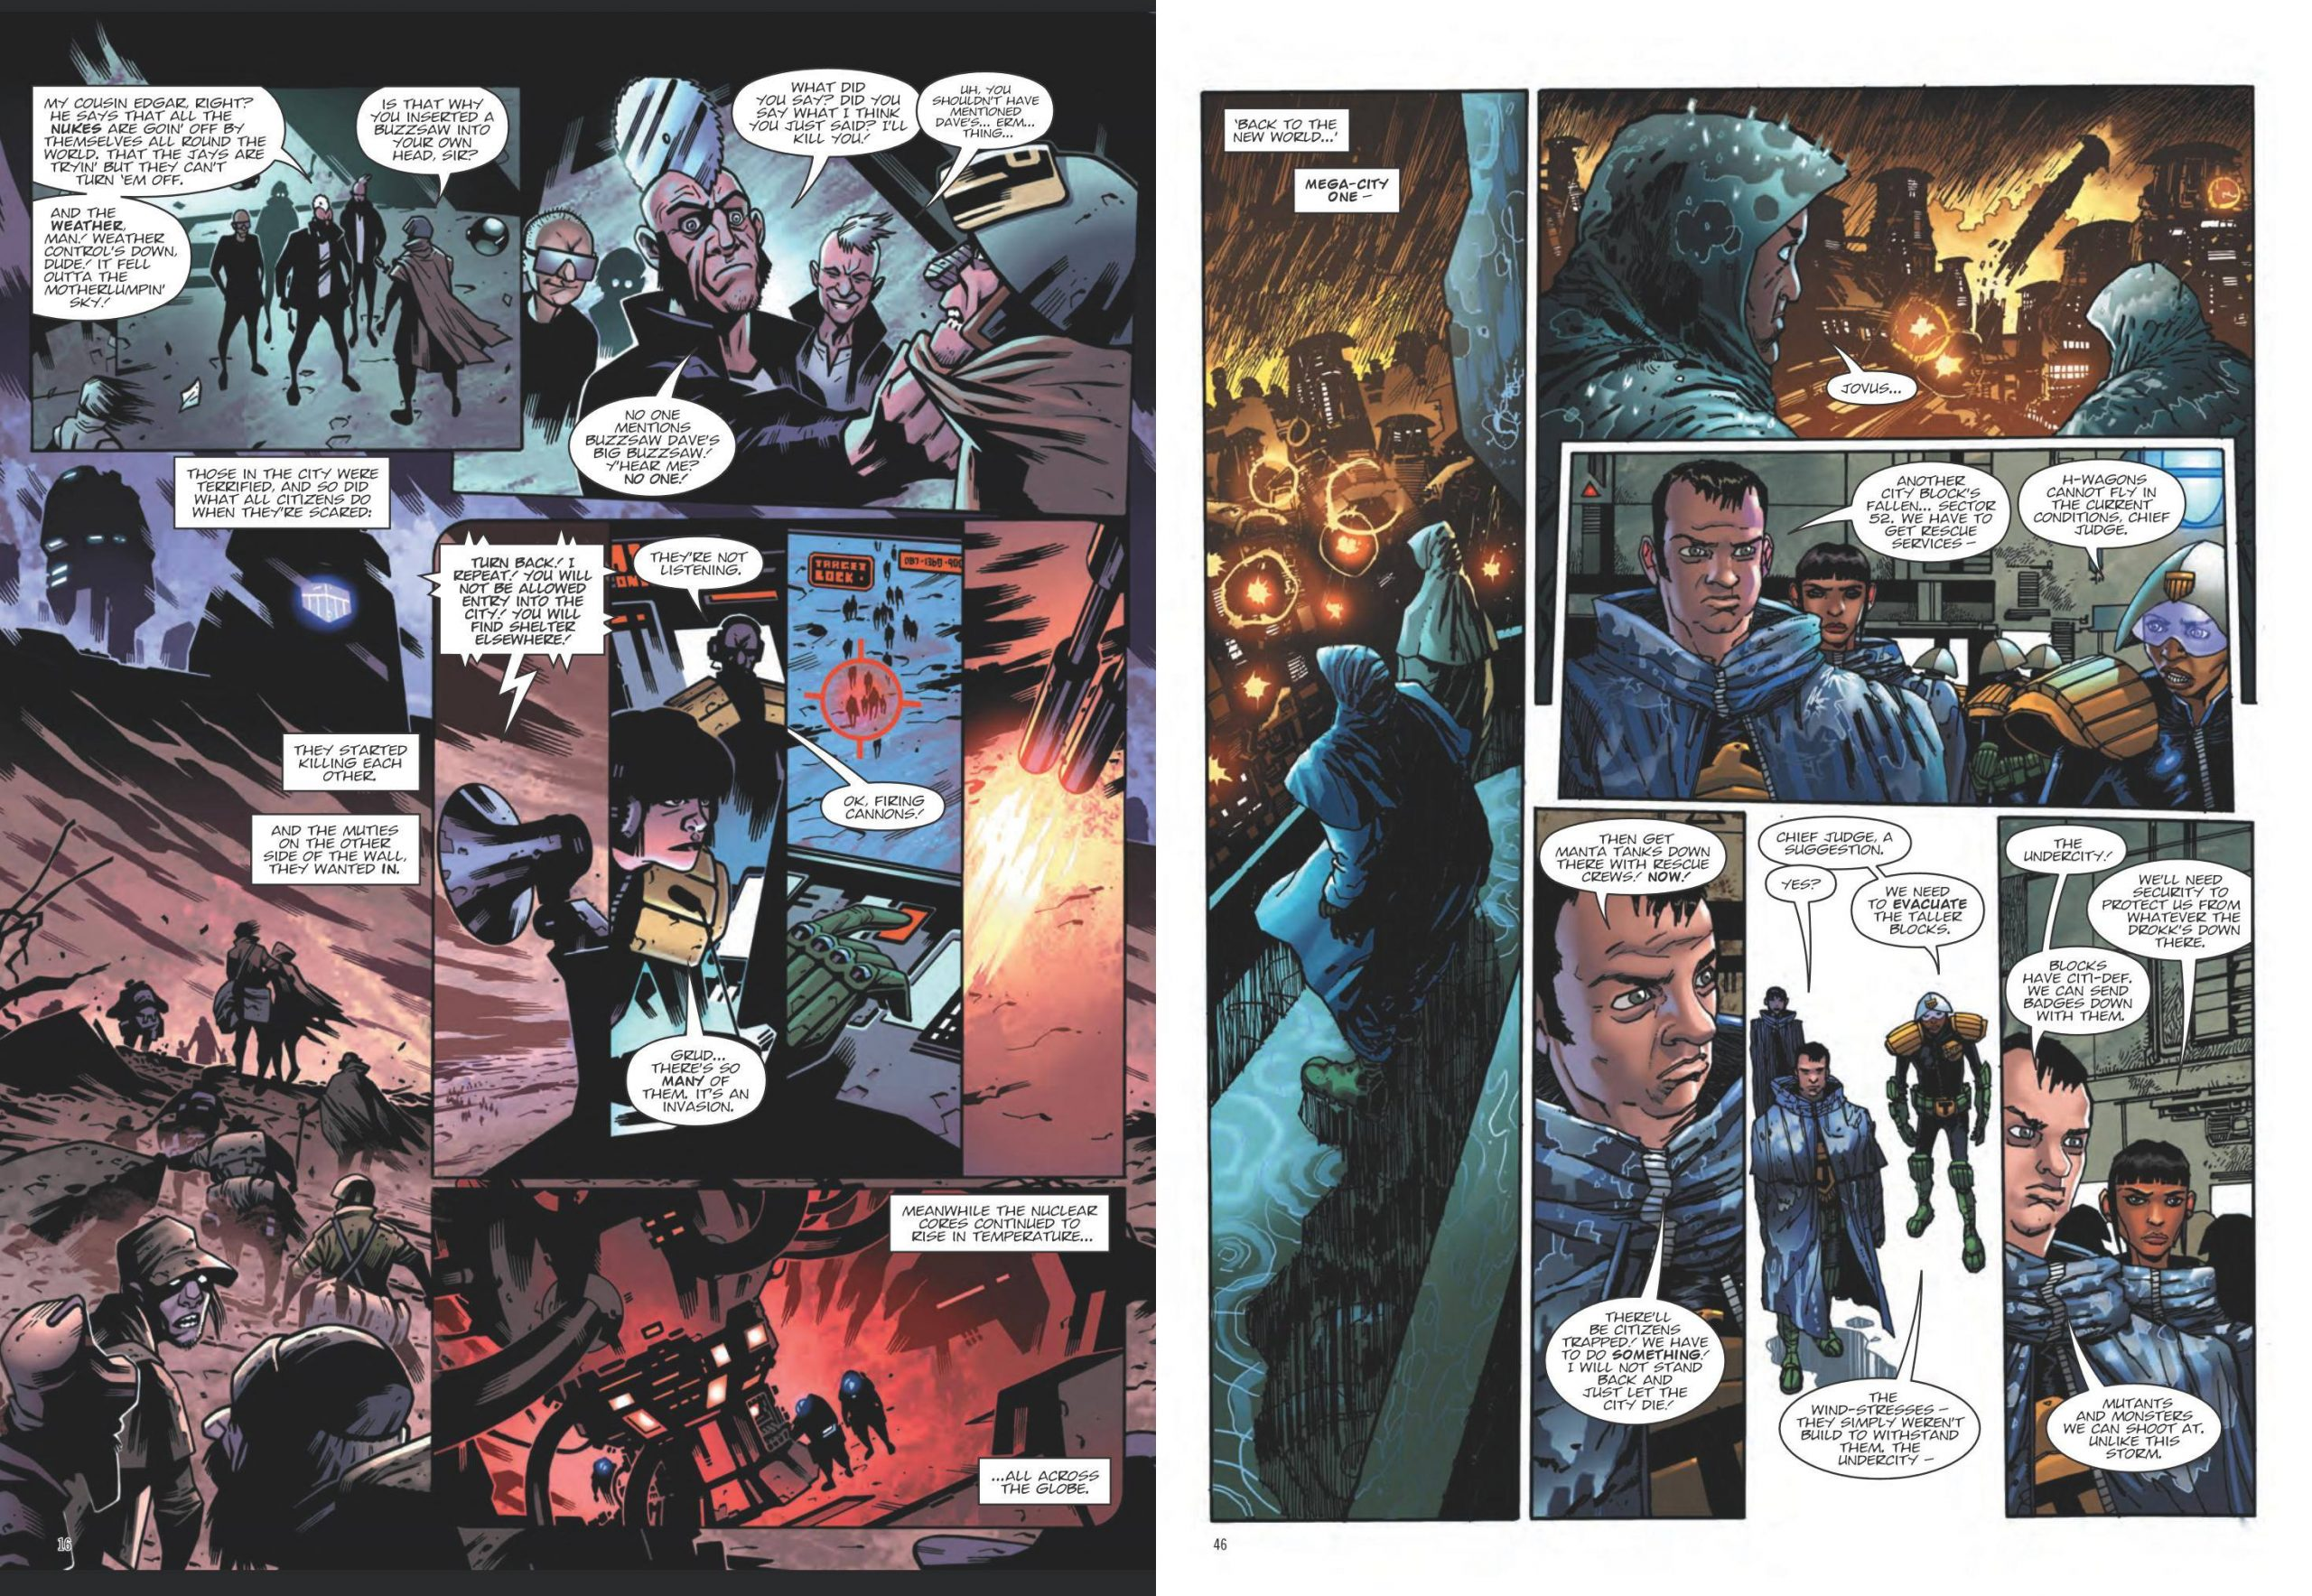 Judge Dredd - End of Days review